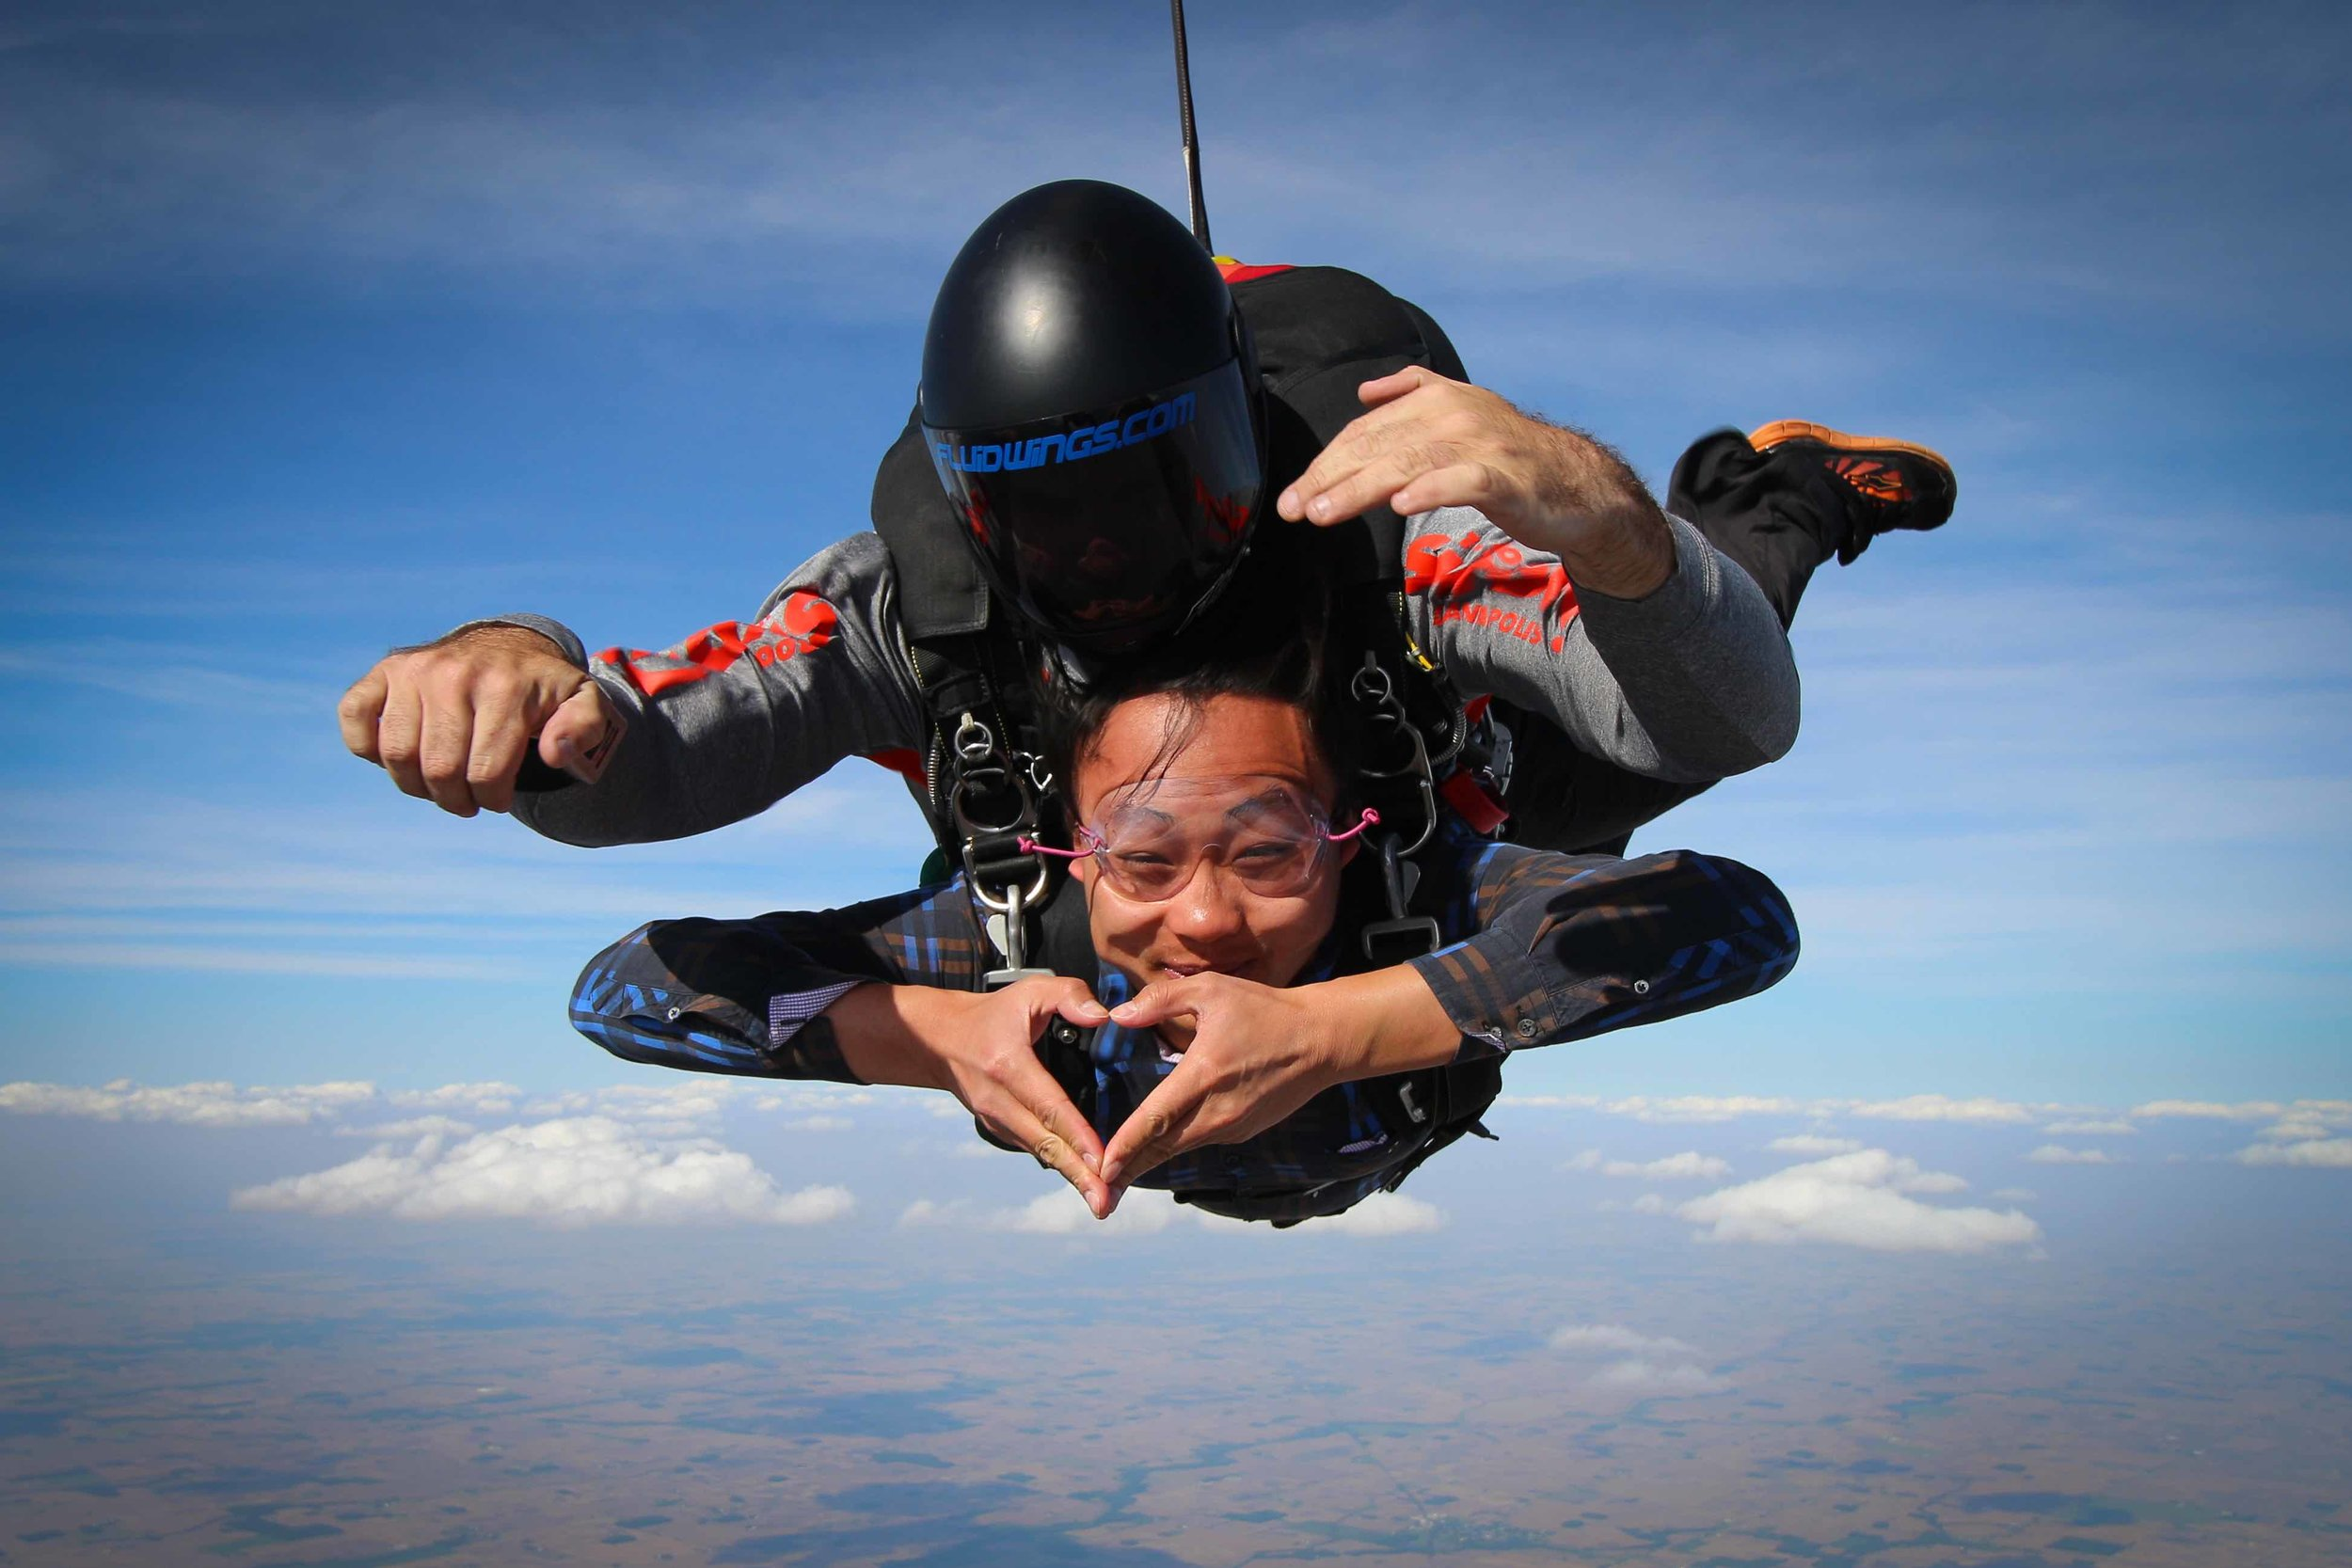 Make a heart during free fall